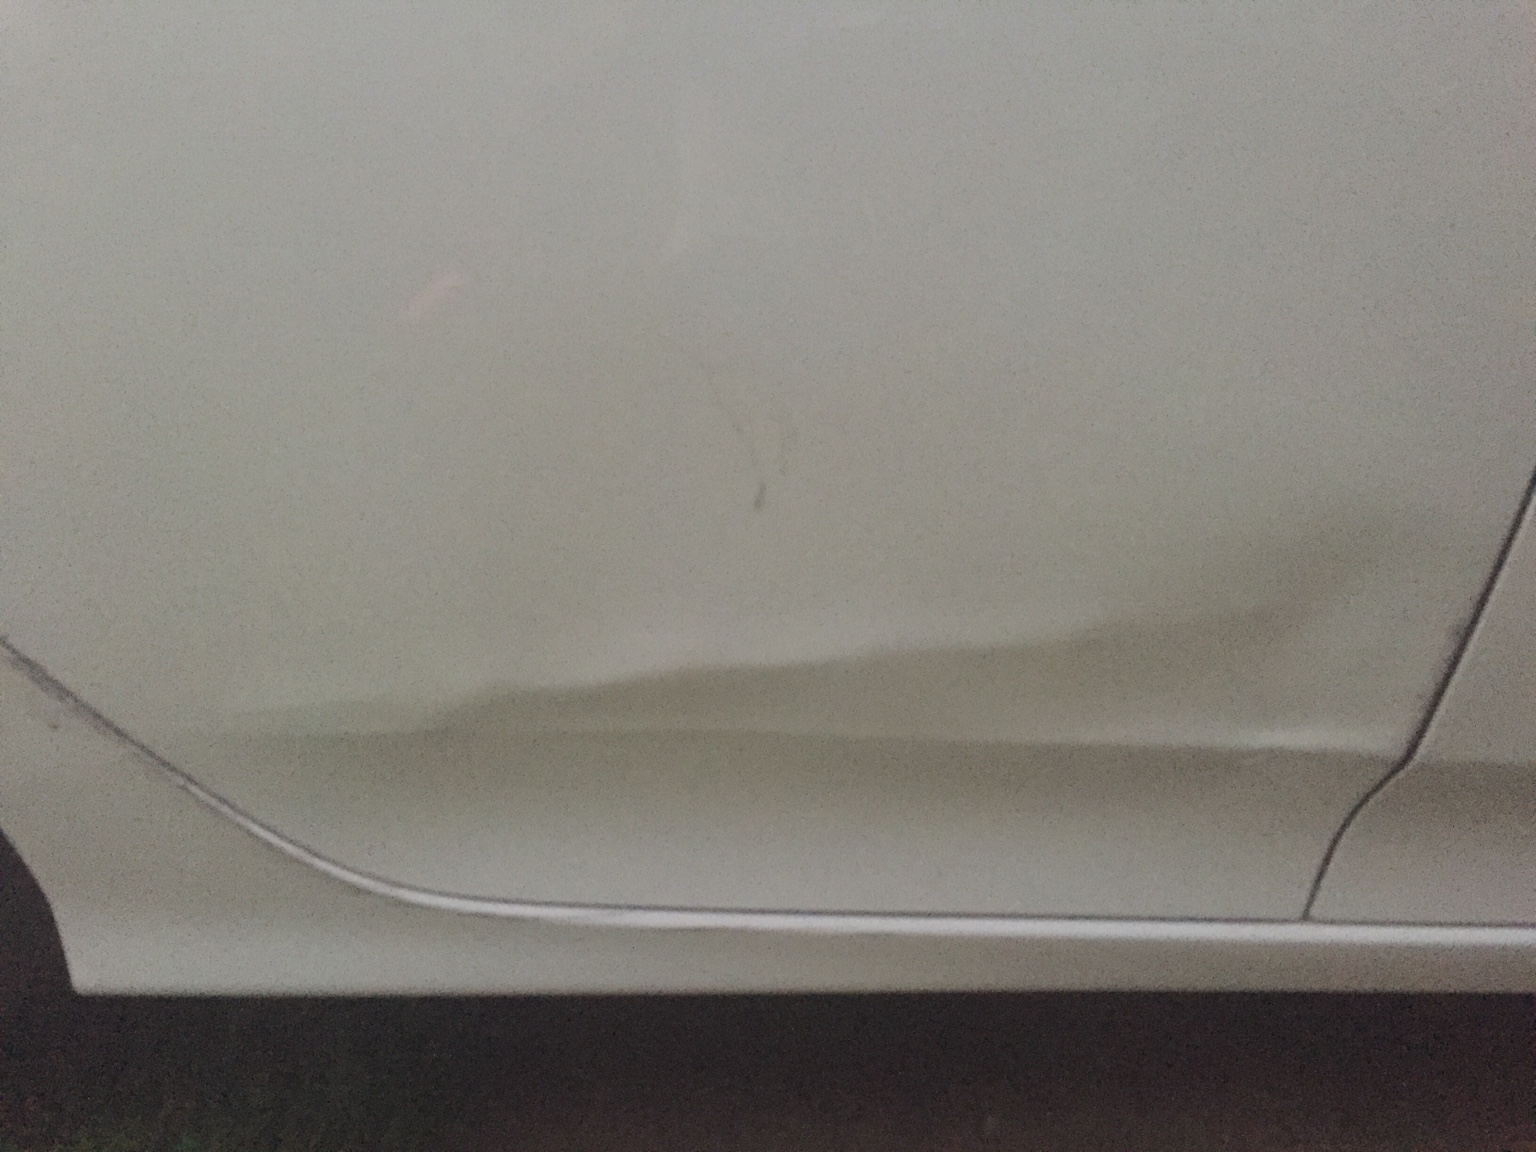 Honda City Dent (Suggest what to do) - e9d88e82f4cd17432727e46367ab566a